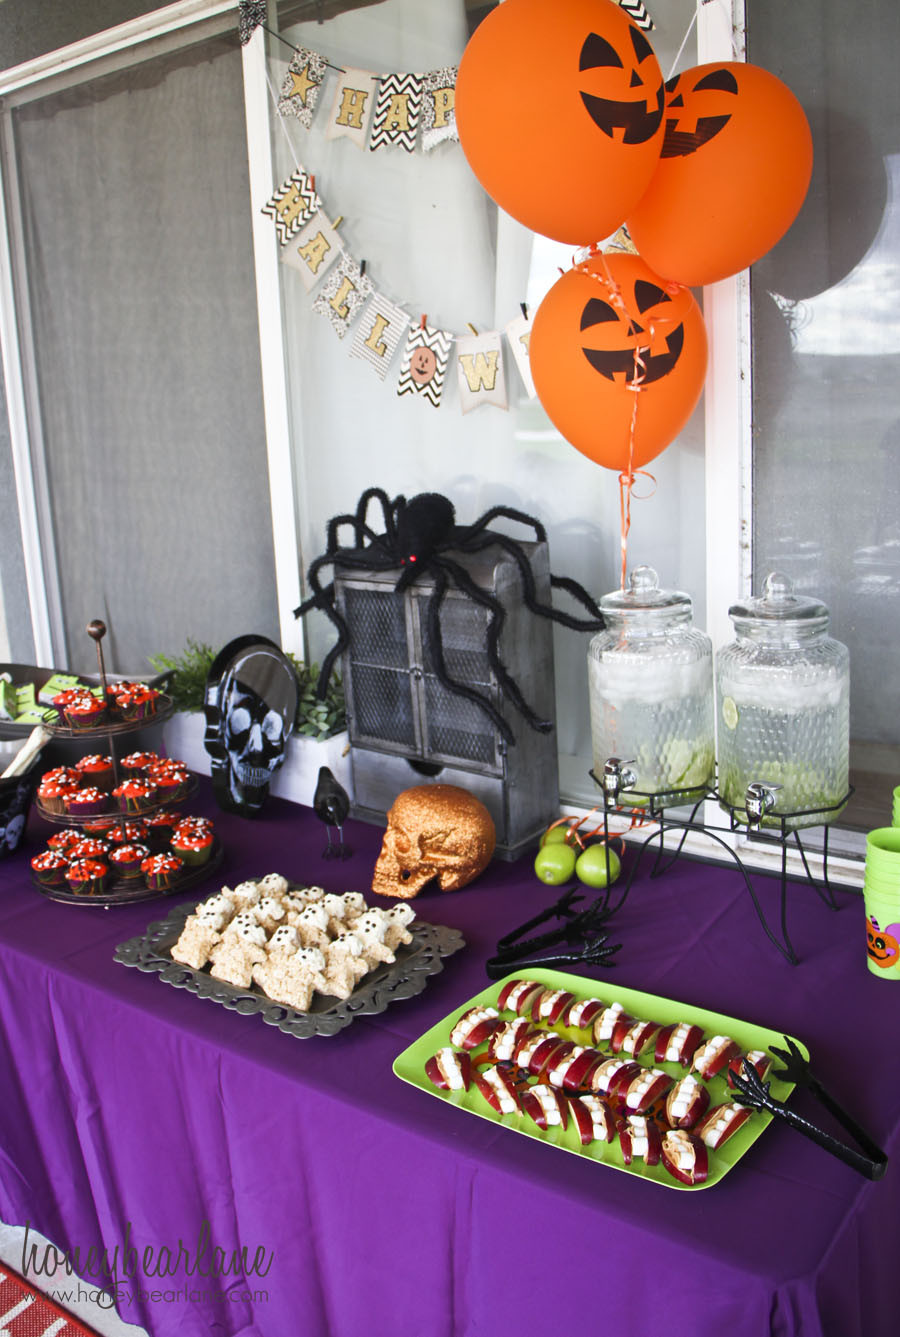 Halloween Bday Party Ideas  Kids Halloween Party Ideas Honeybear Lane